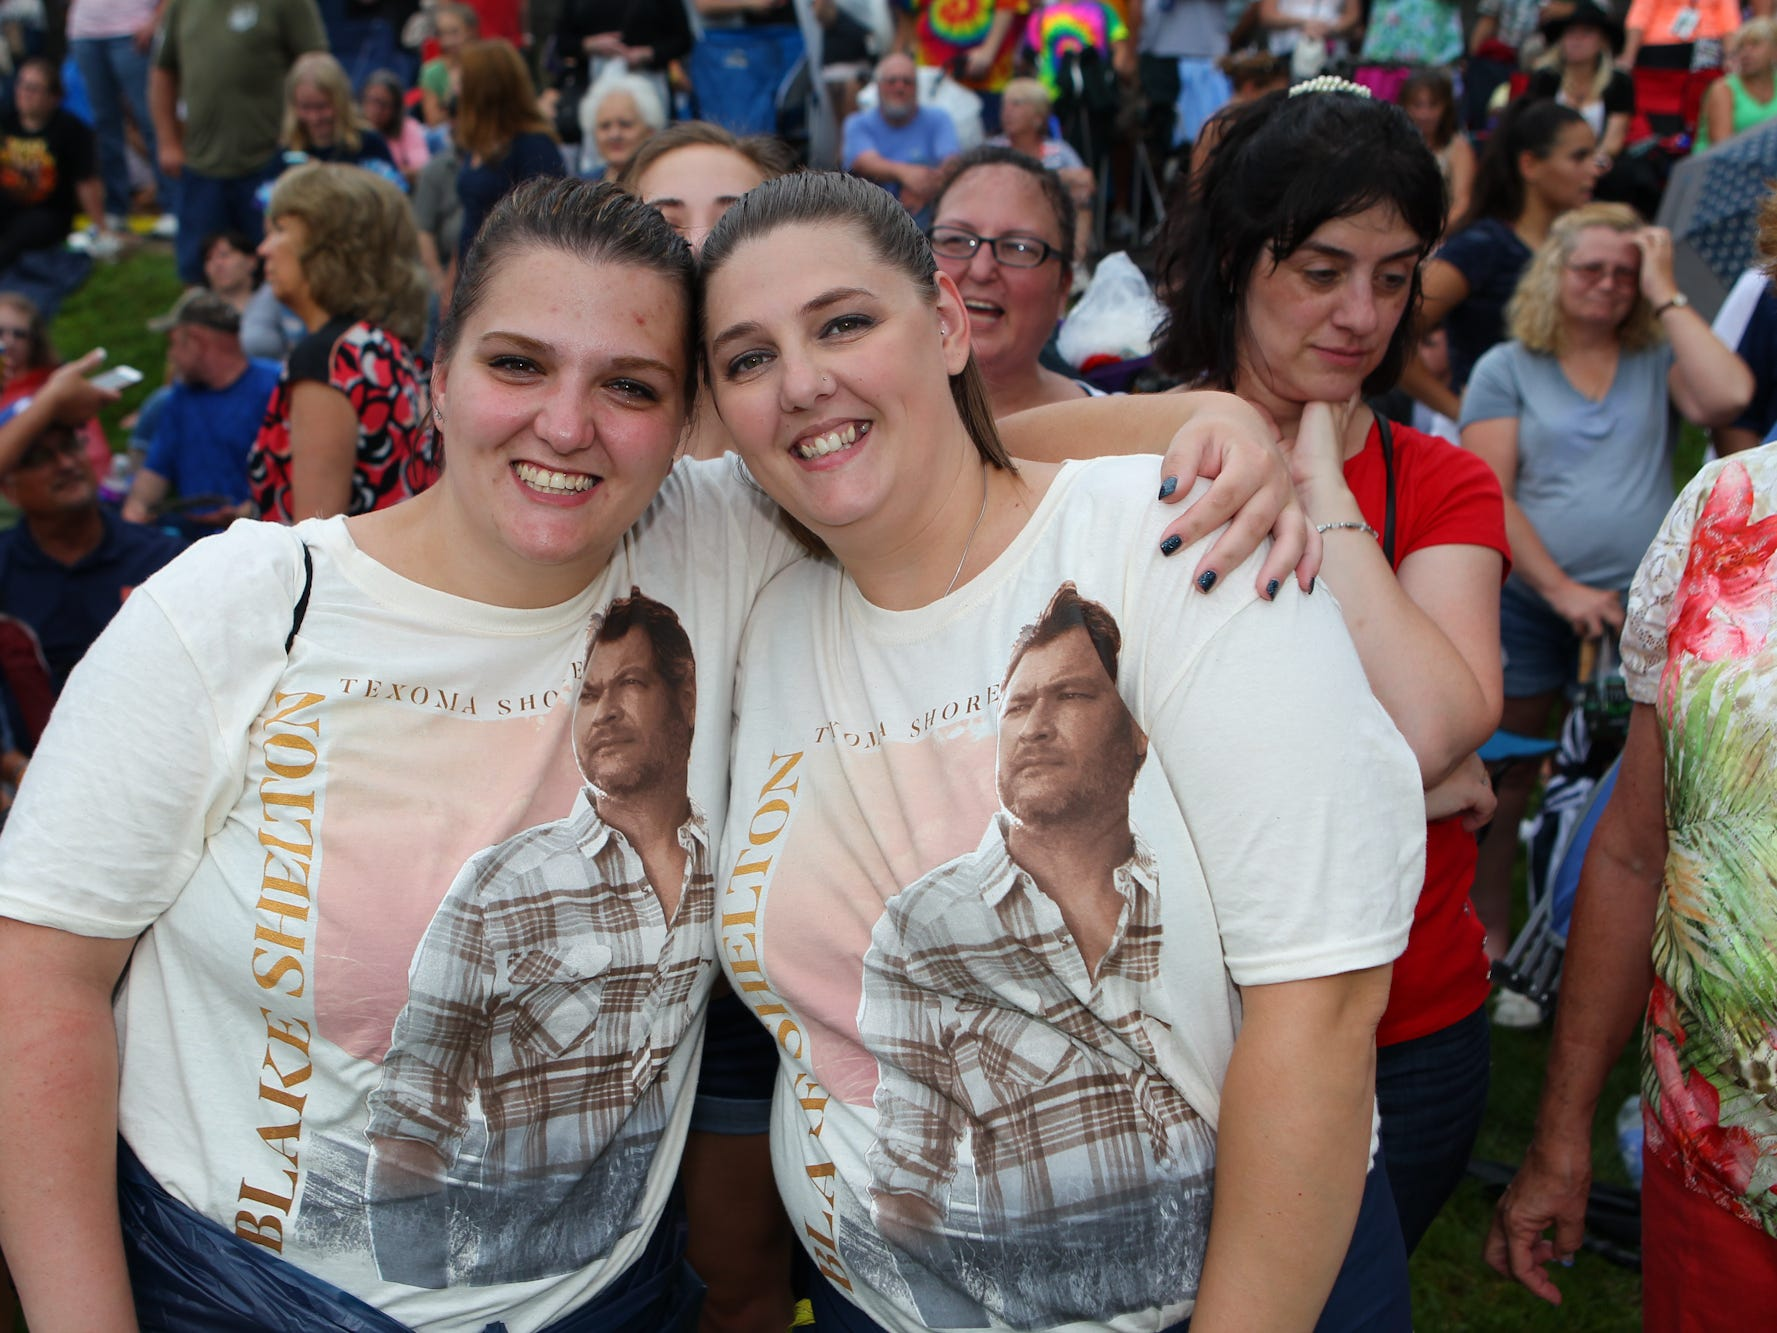 Alyssa Driedbaugh and Breonna Fuller wait in line with their Blake Shelton shirts.